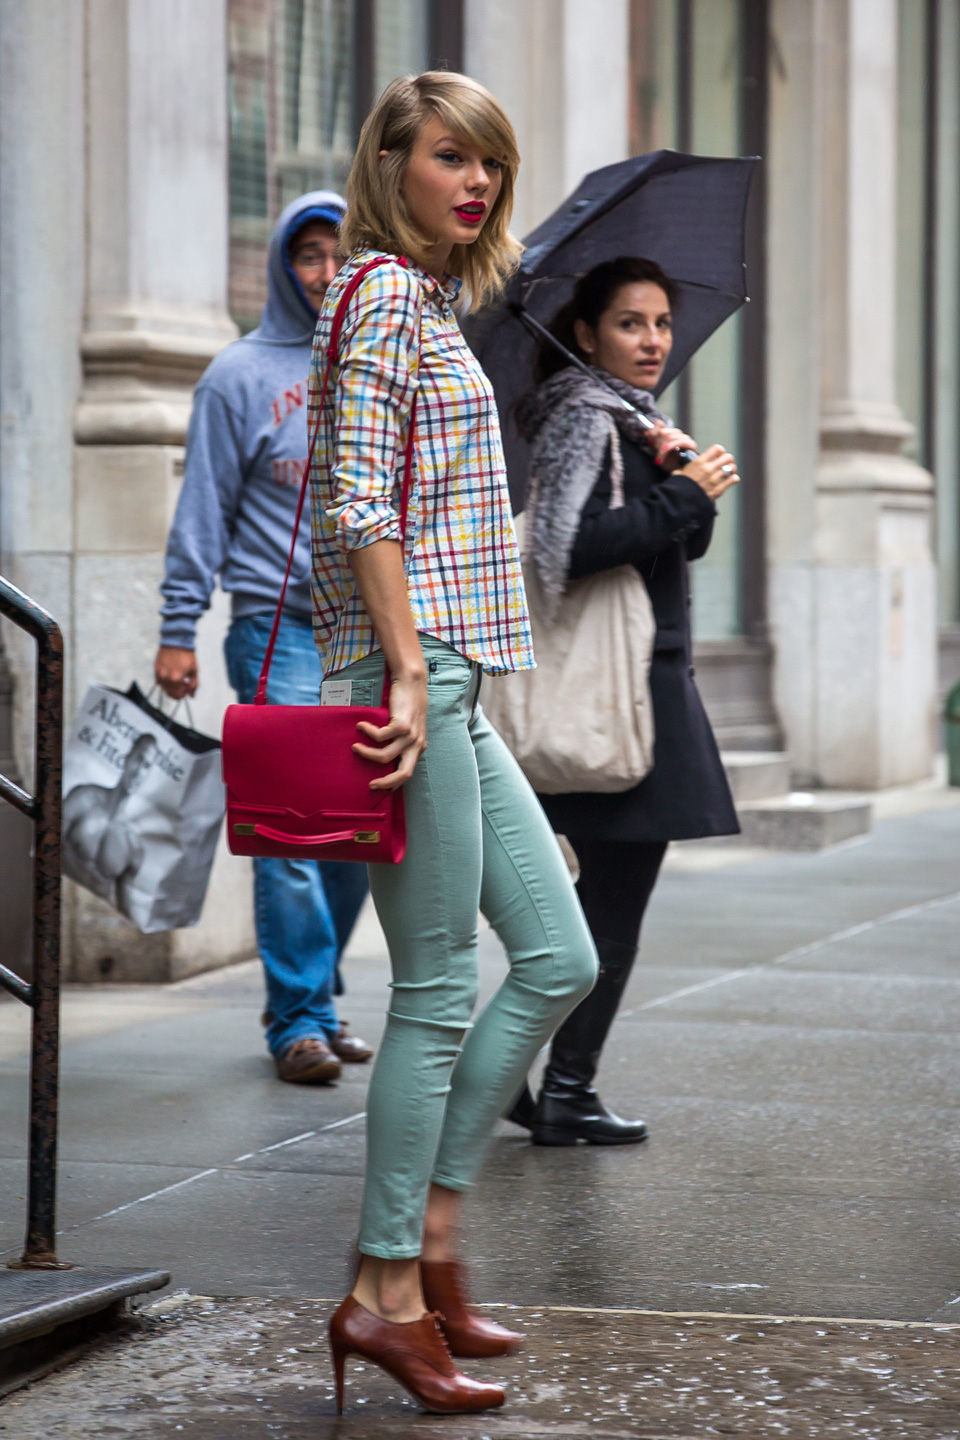 Rainy days aren't enough to stop the colorful Swift from stepping out in a stylish yet approachable look we can all copy